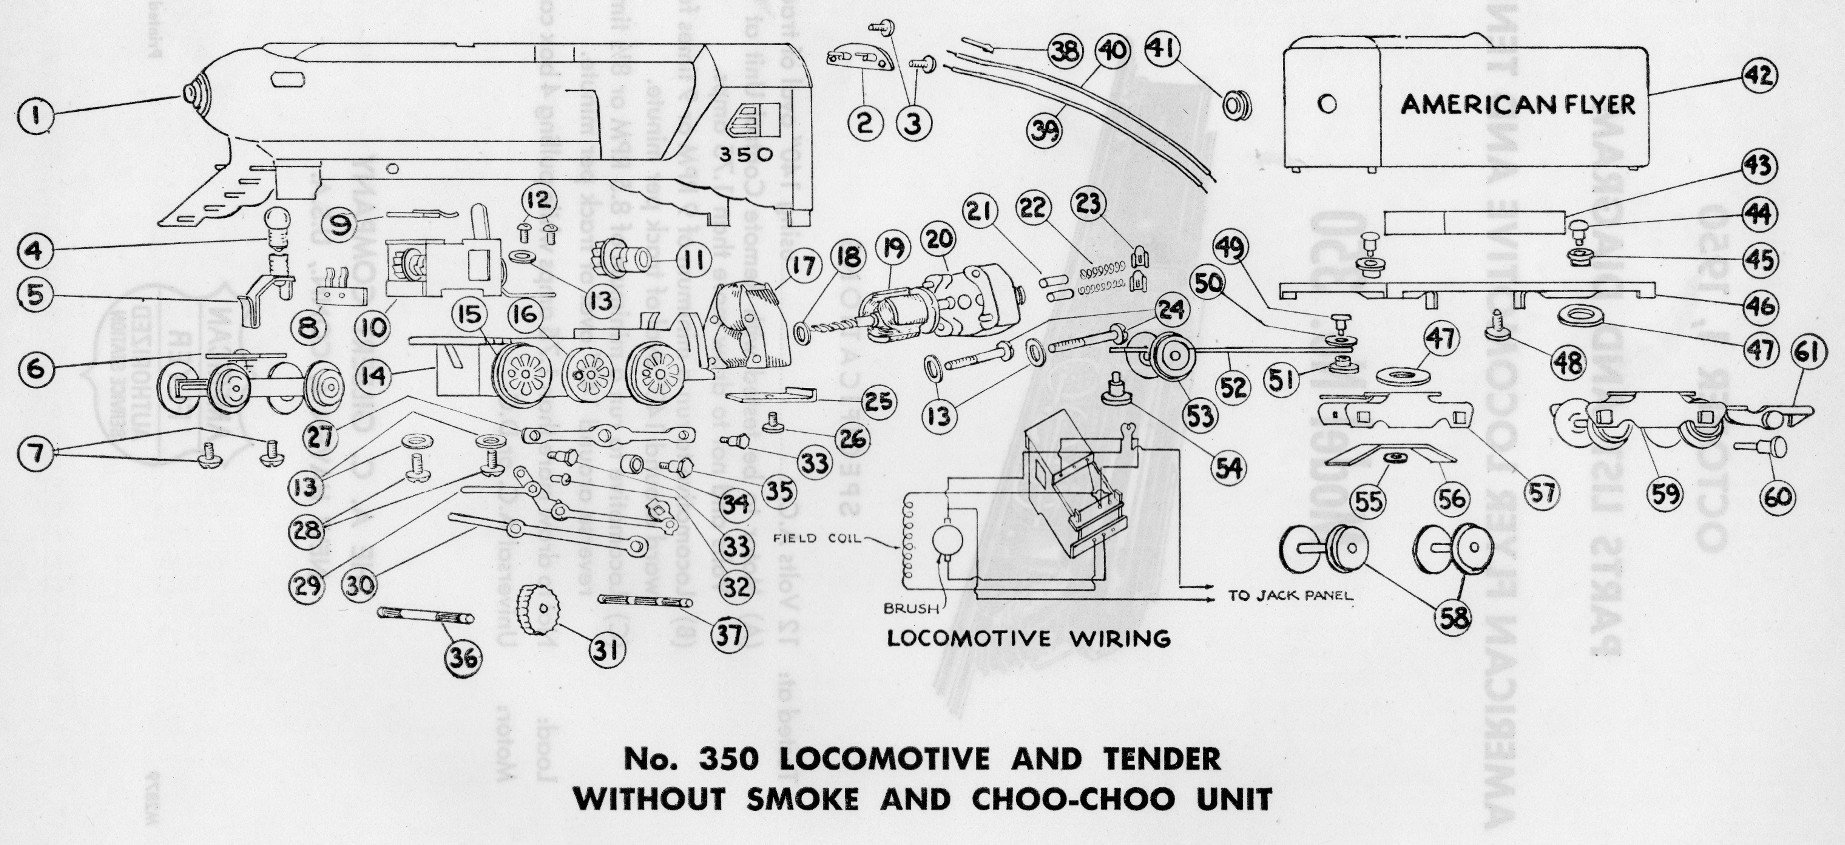 American Flyer List Lionel Train Wiring Diagrams Model 350 Parts And Diagram Traindr